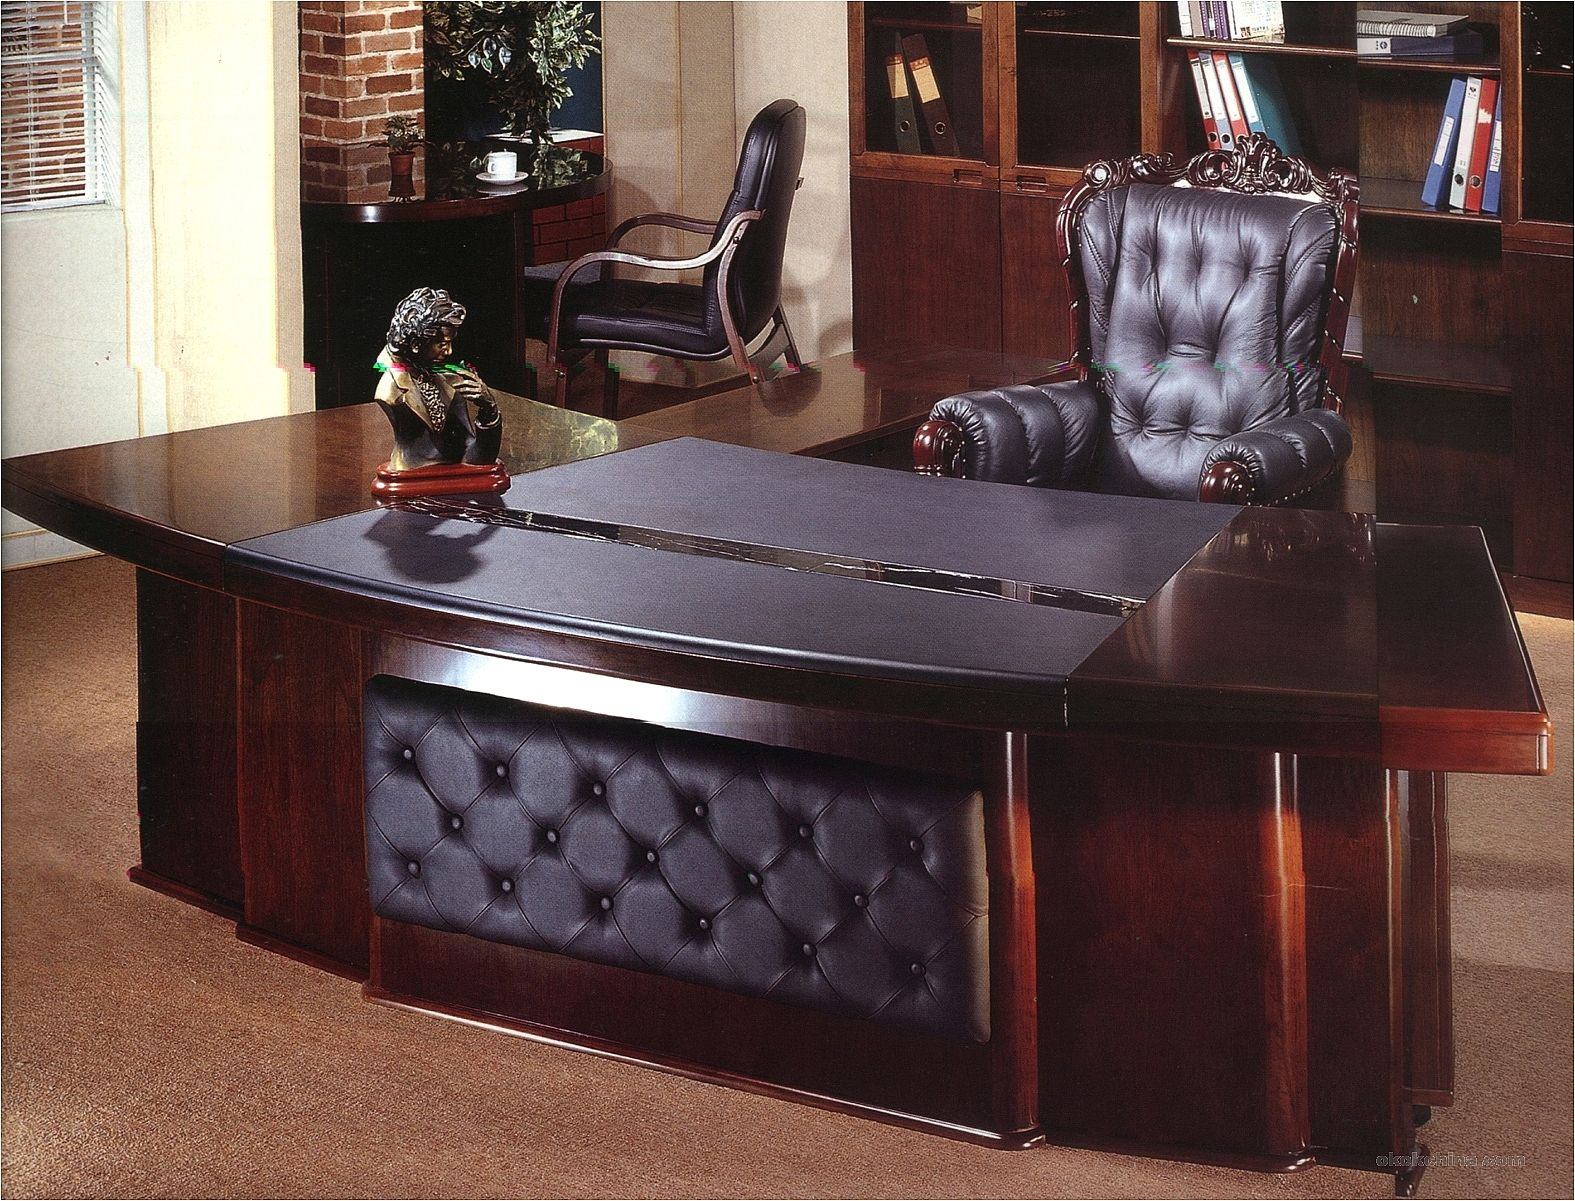 Executive Office Furniture: Executive Table-3248.jpg (1575×1201)